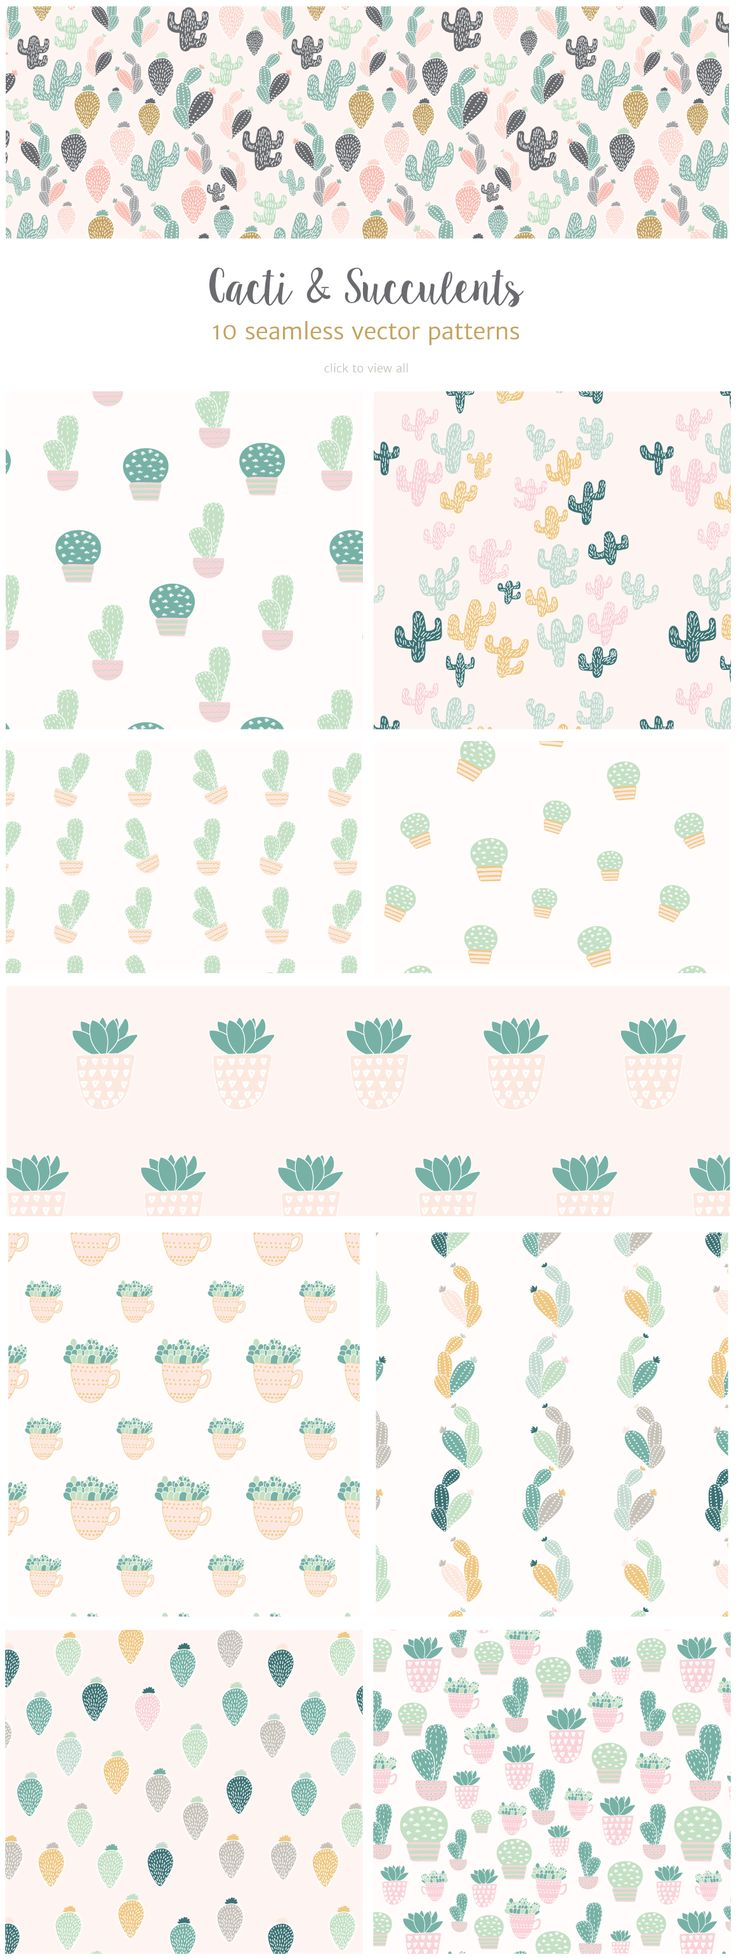 Cactus and Succulents seamless patterns and illustrations can be used to give a playful look to your design projects or printed on paper and textiles.